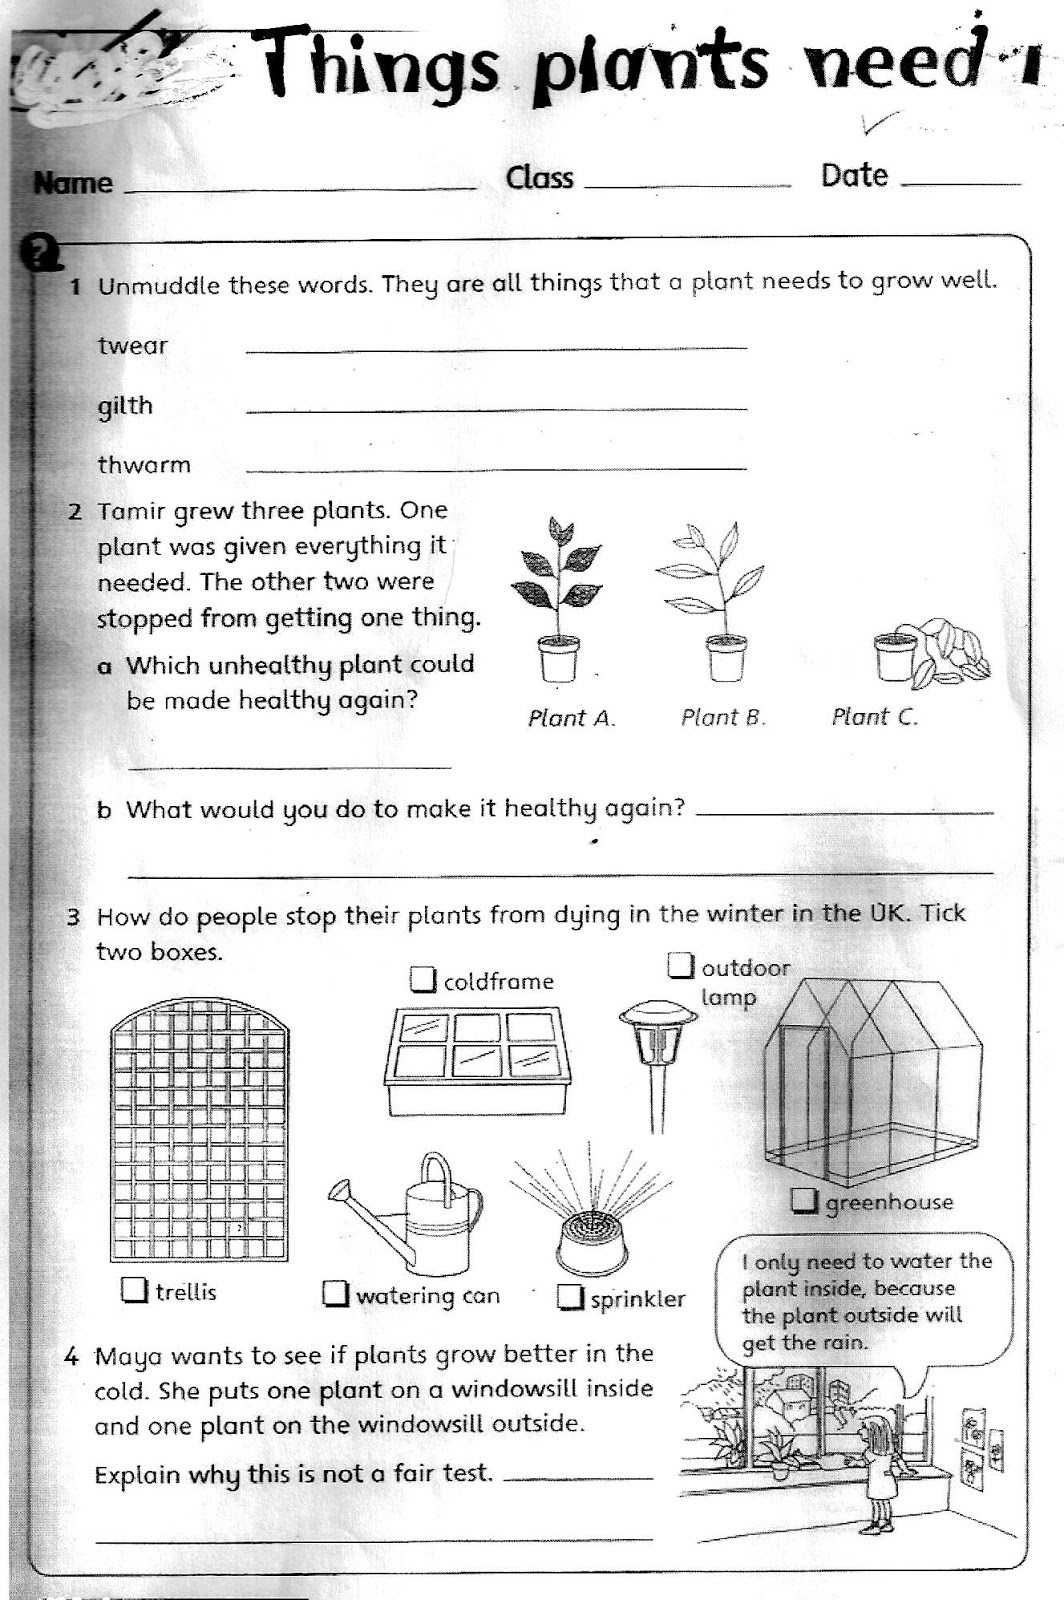 3rd Grade Science Worksheets Free 3rd Grade Science Worksheets Printable and Plant for